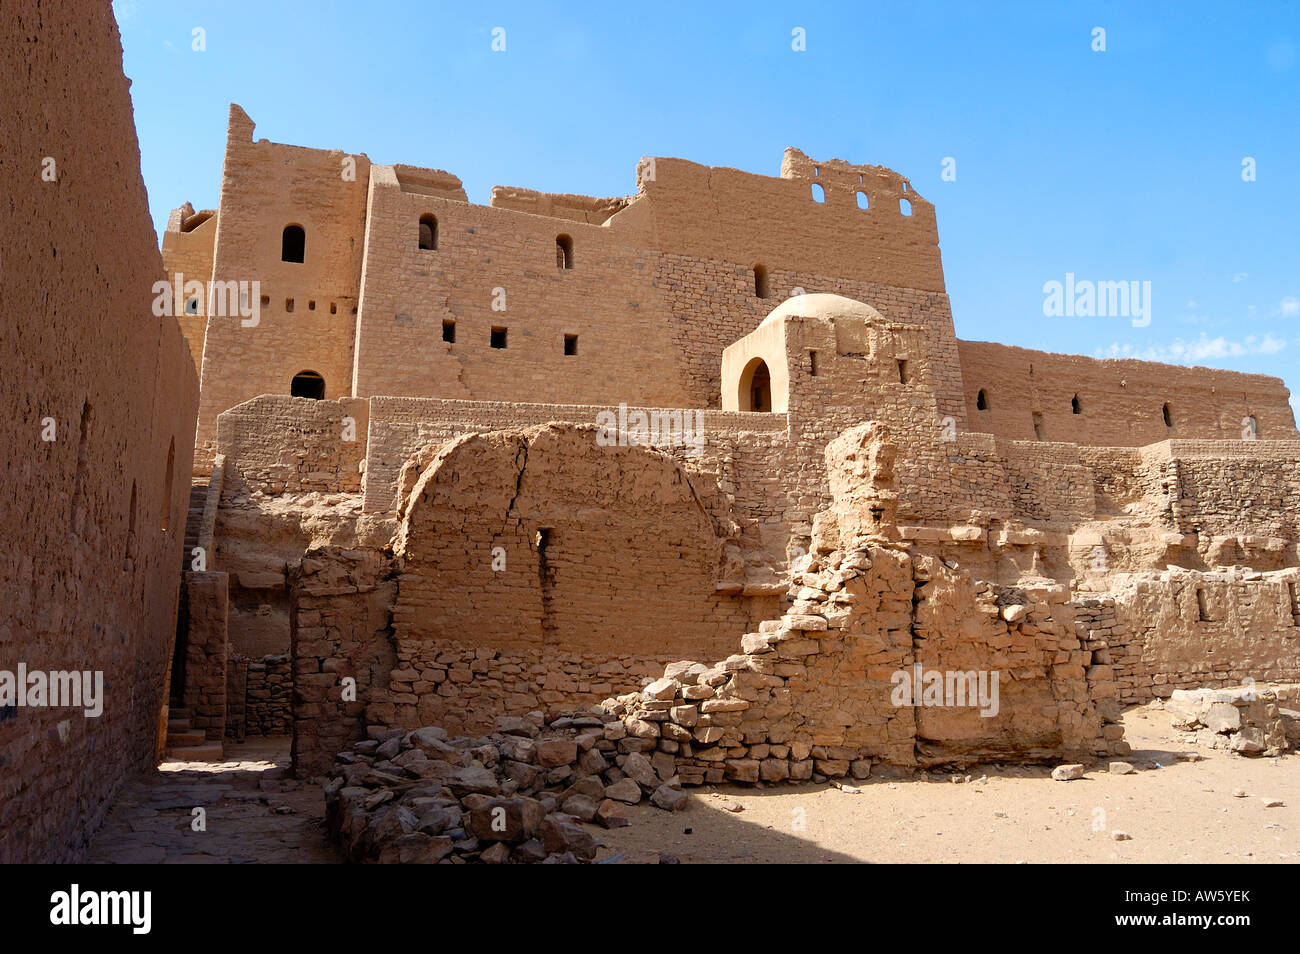 The ruins of the Monastery of St Simeon towards  the   river Nile at  Aswan  Egypt - Stock Image